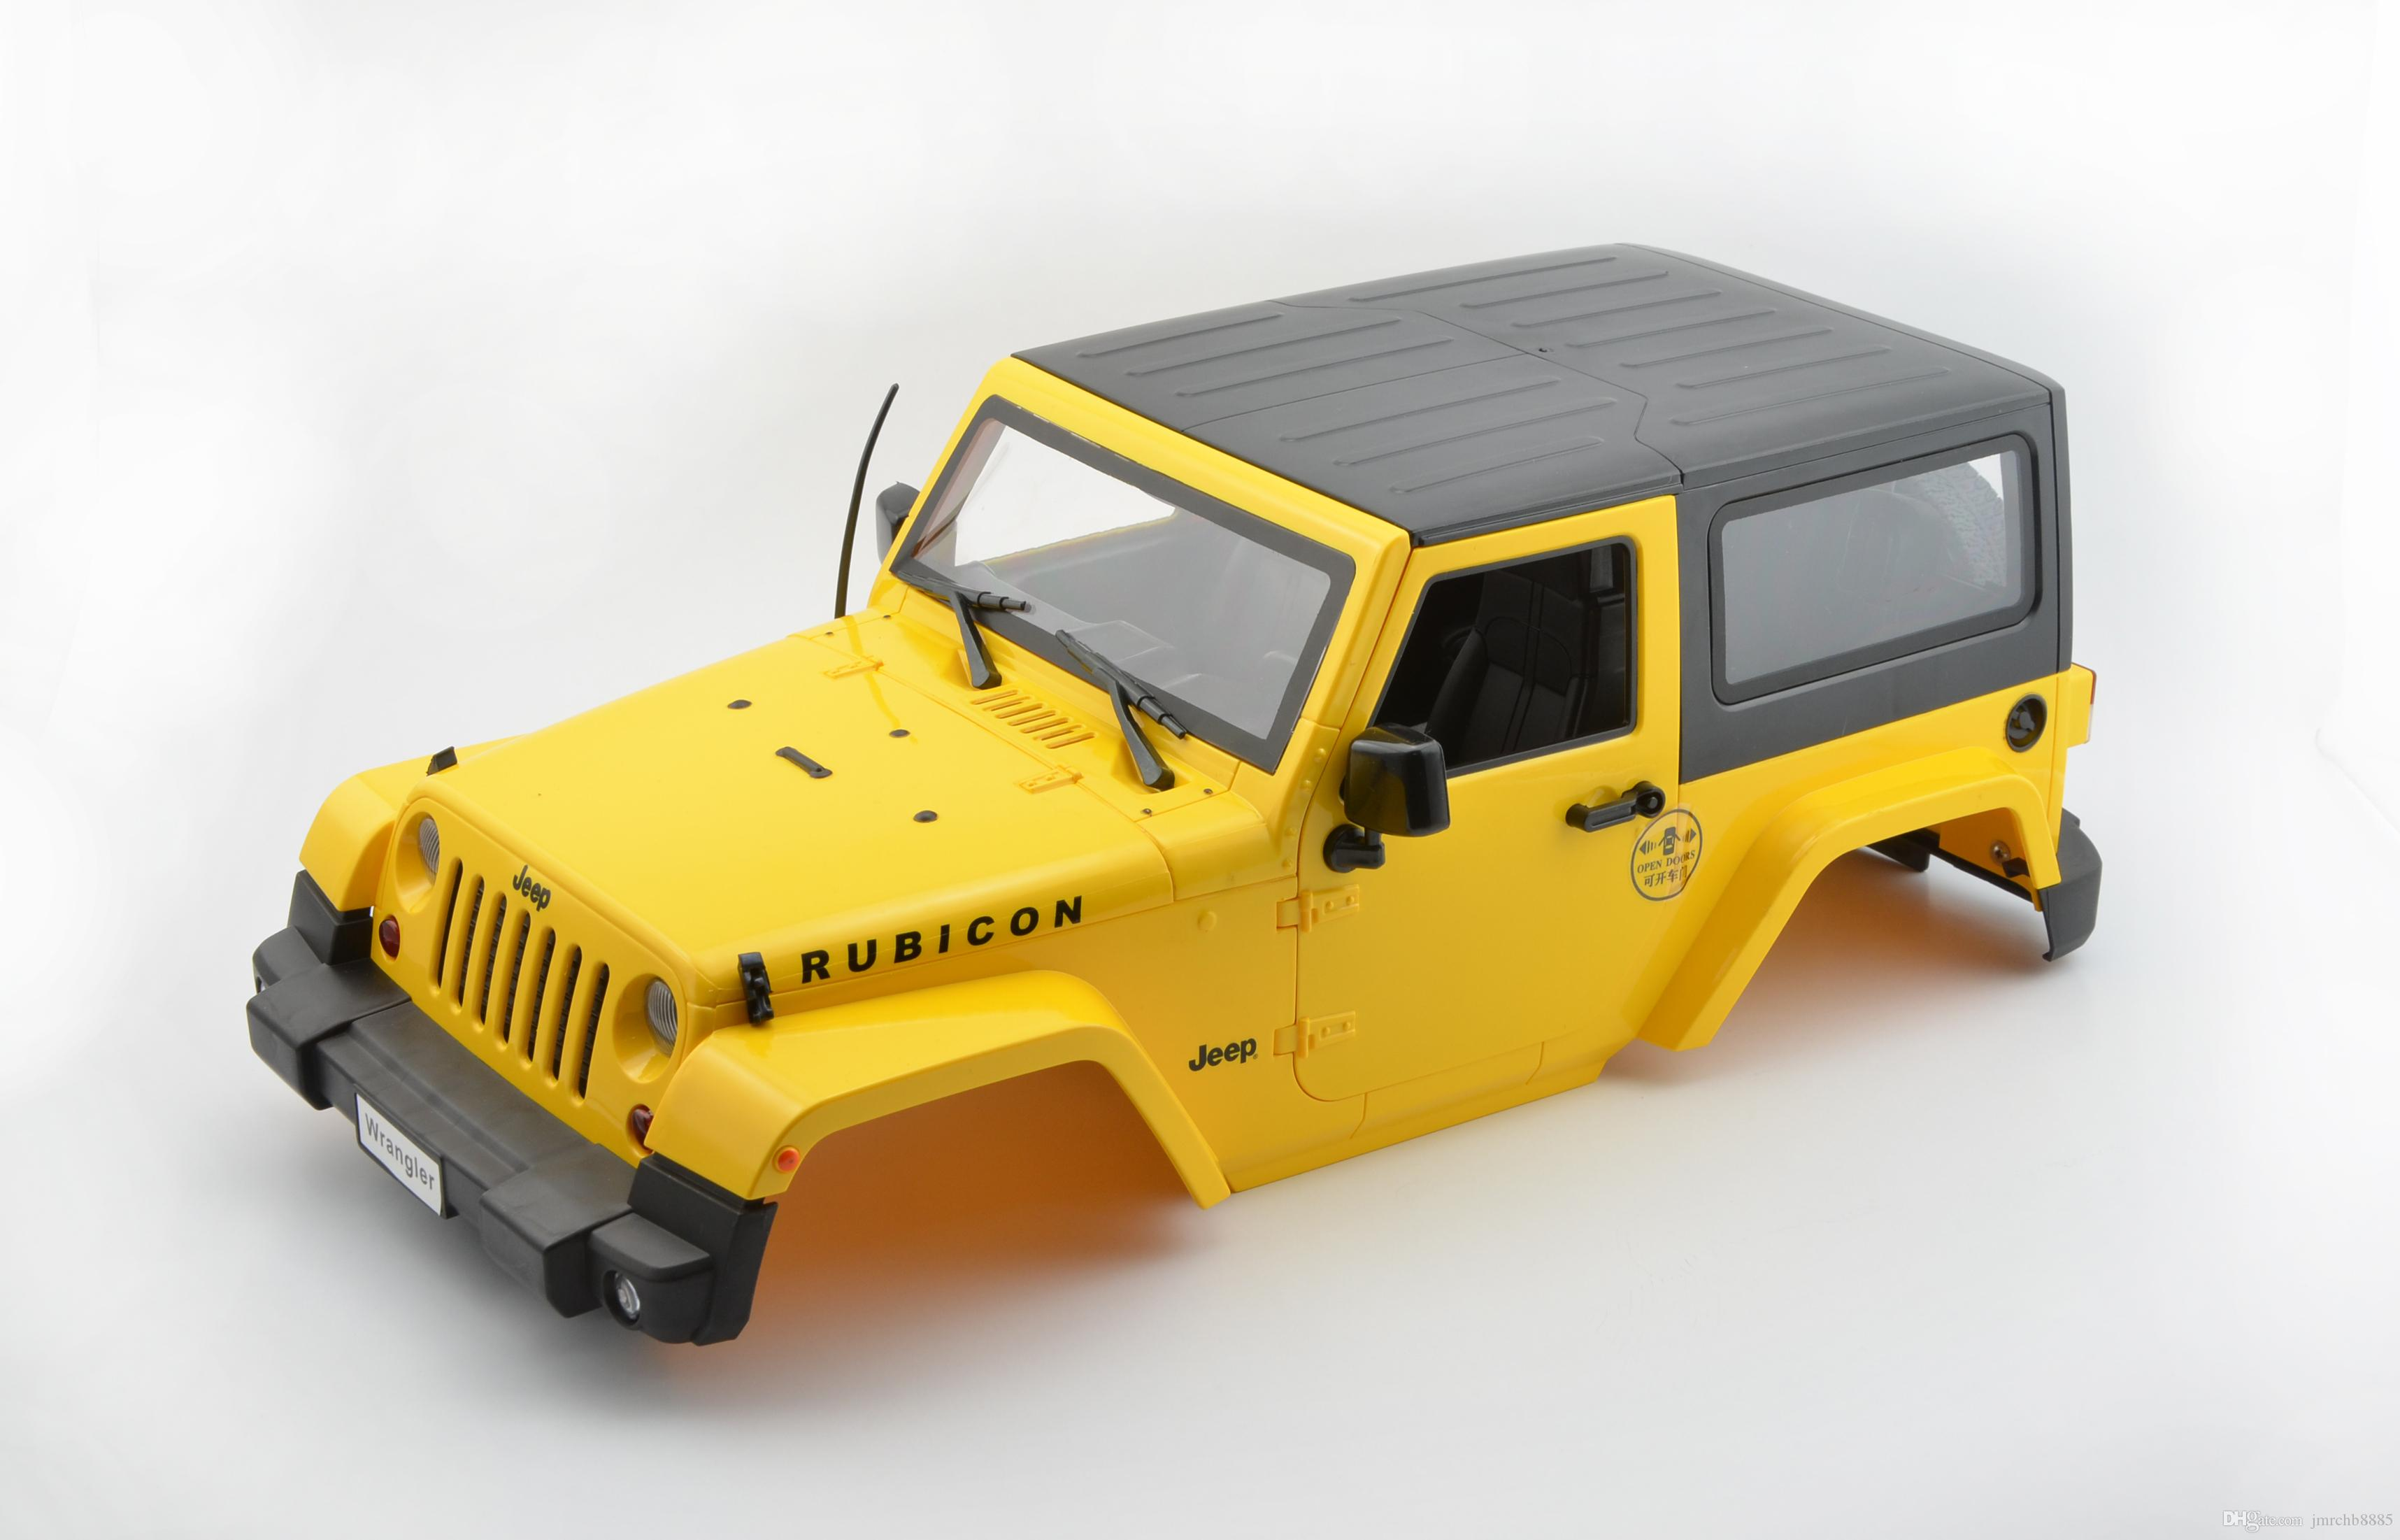 Rc Scale Truck Body Shell 1 10 Jeep Wrangler Rubicon Hard Body Interior Yellow Toys Hobbies Cars Trucks Motorcycles